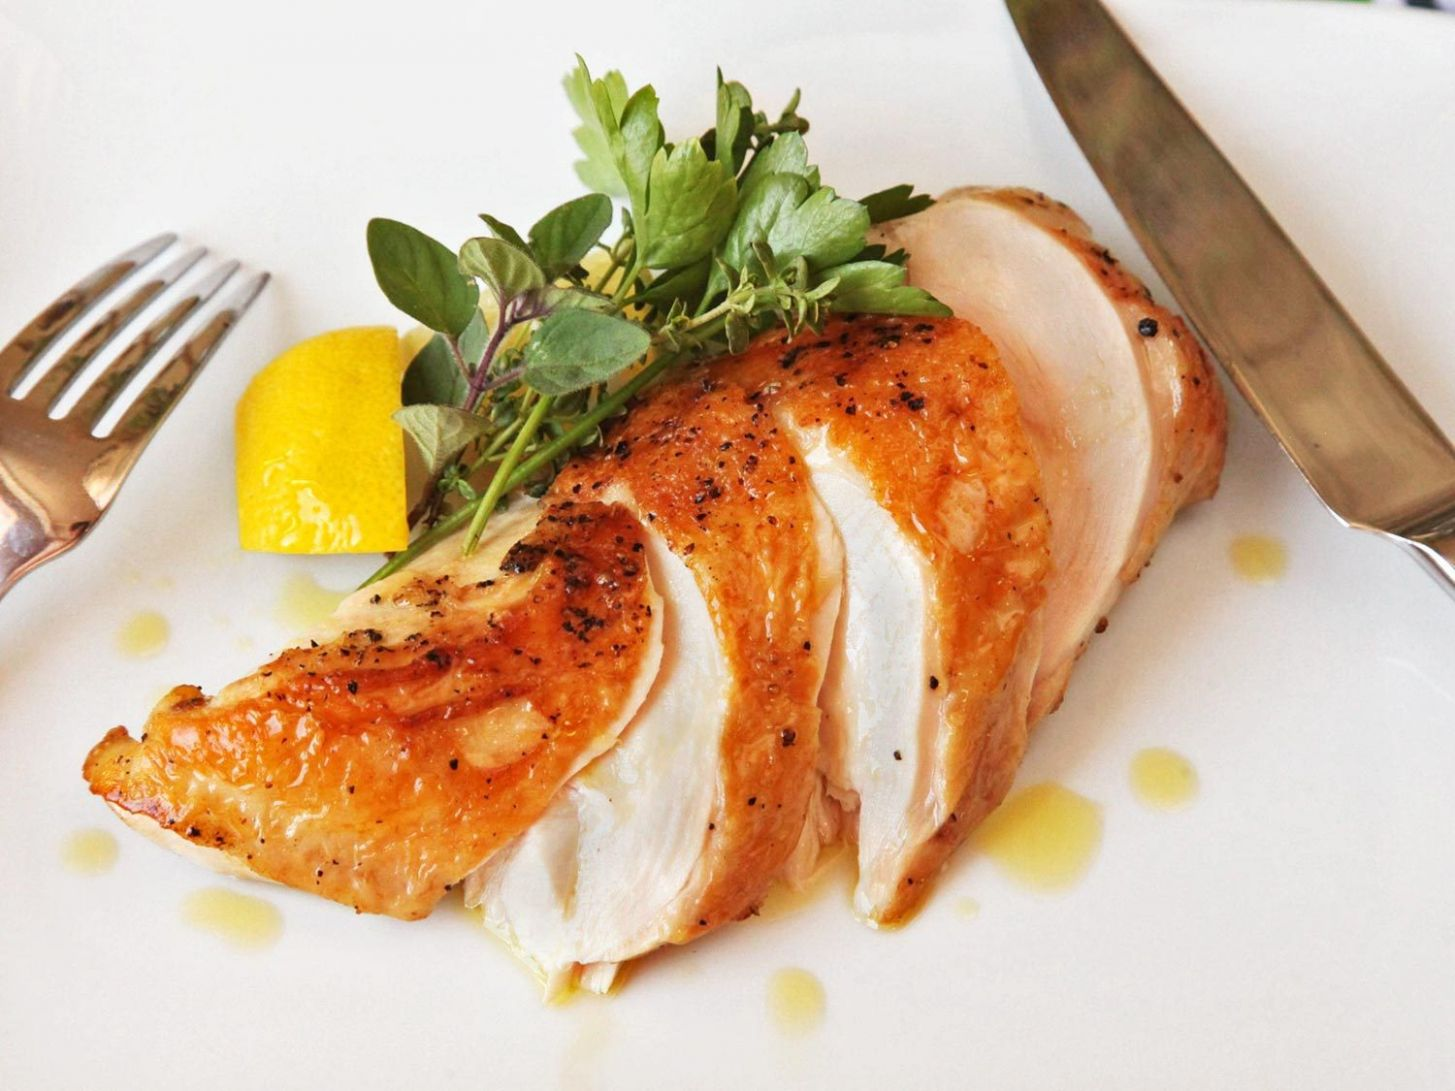 Sous Vide Chicken Breast Recipe - Recipes Chicken Breast With Skin On